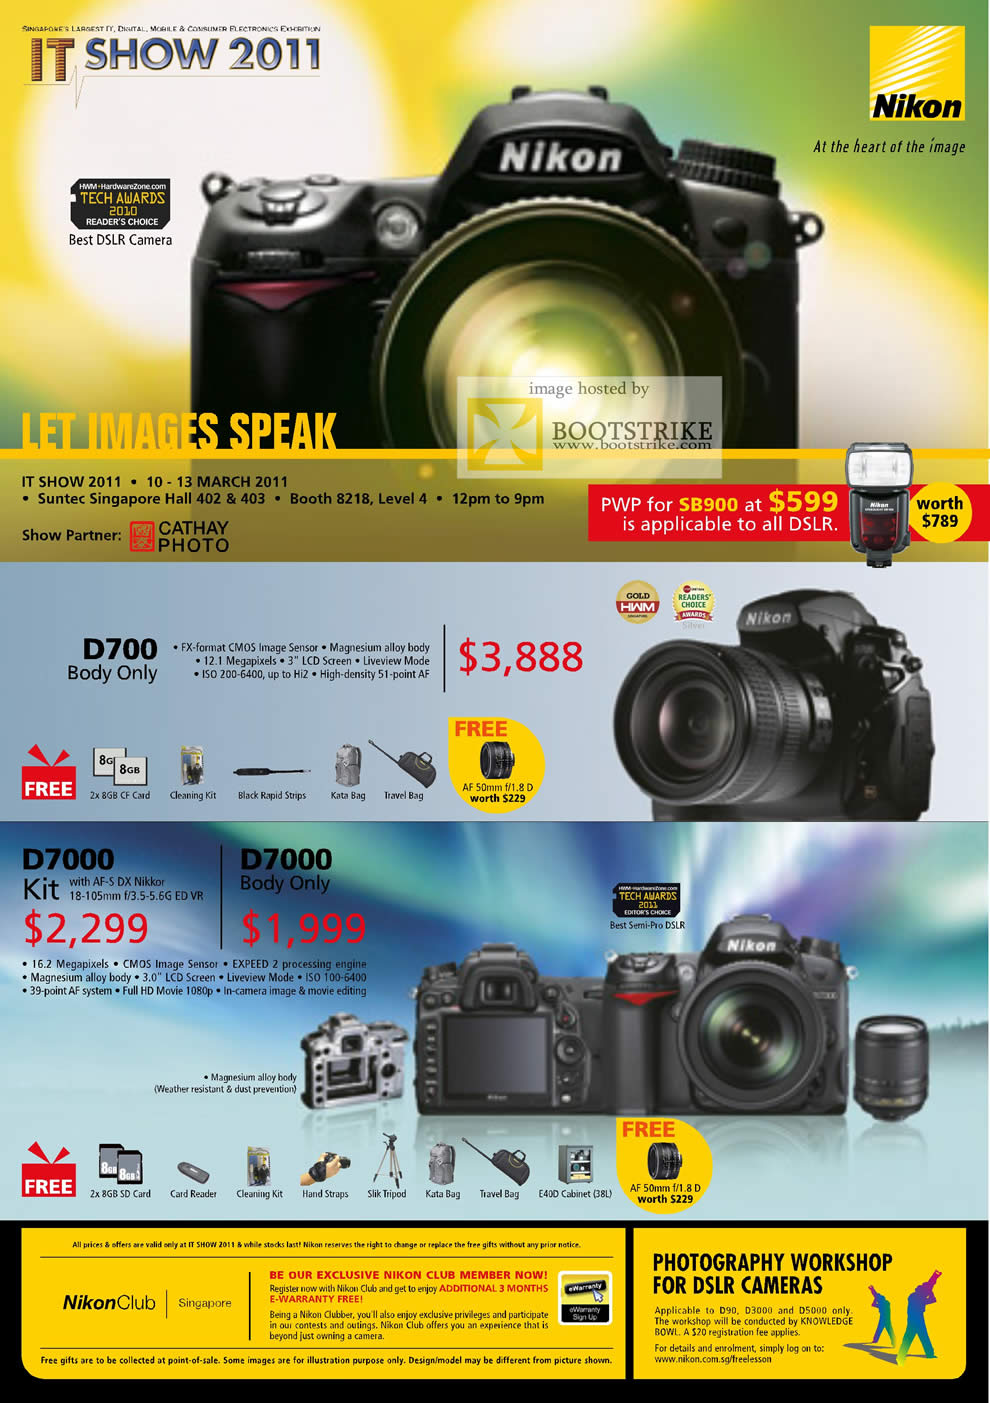 IT Show 2011 price list image brochure of Nikon Digital Cameras DSLR D700 D7000 Body